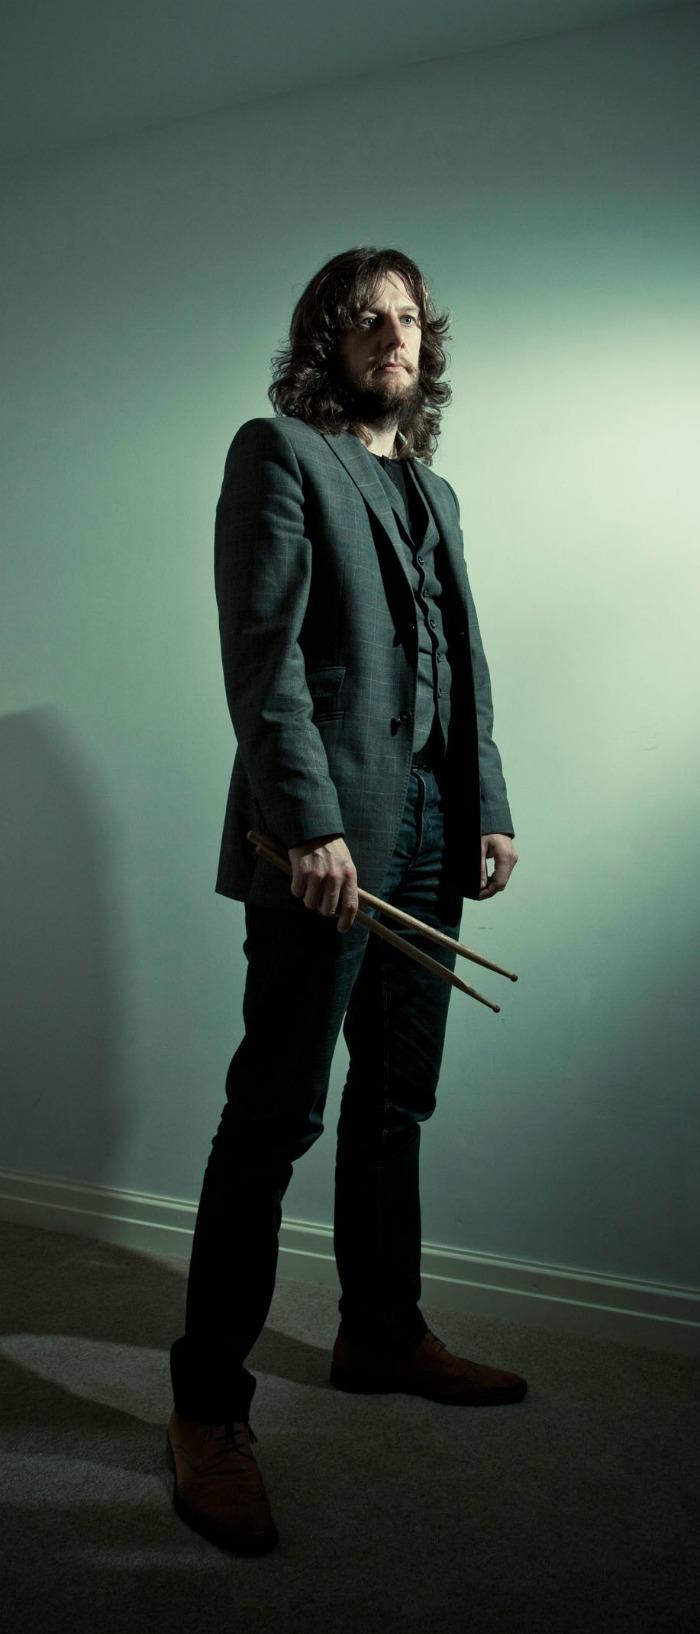 6. Chris - Drums